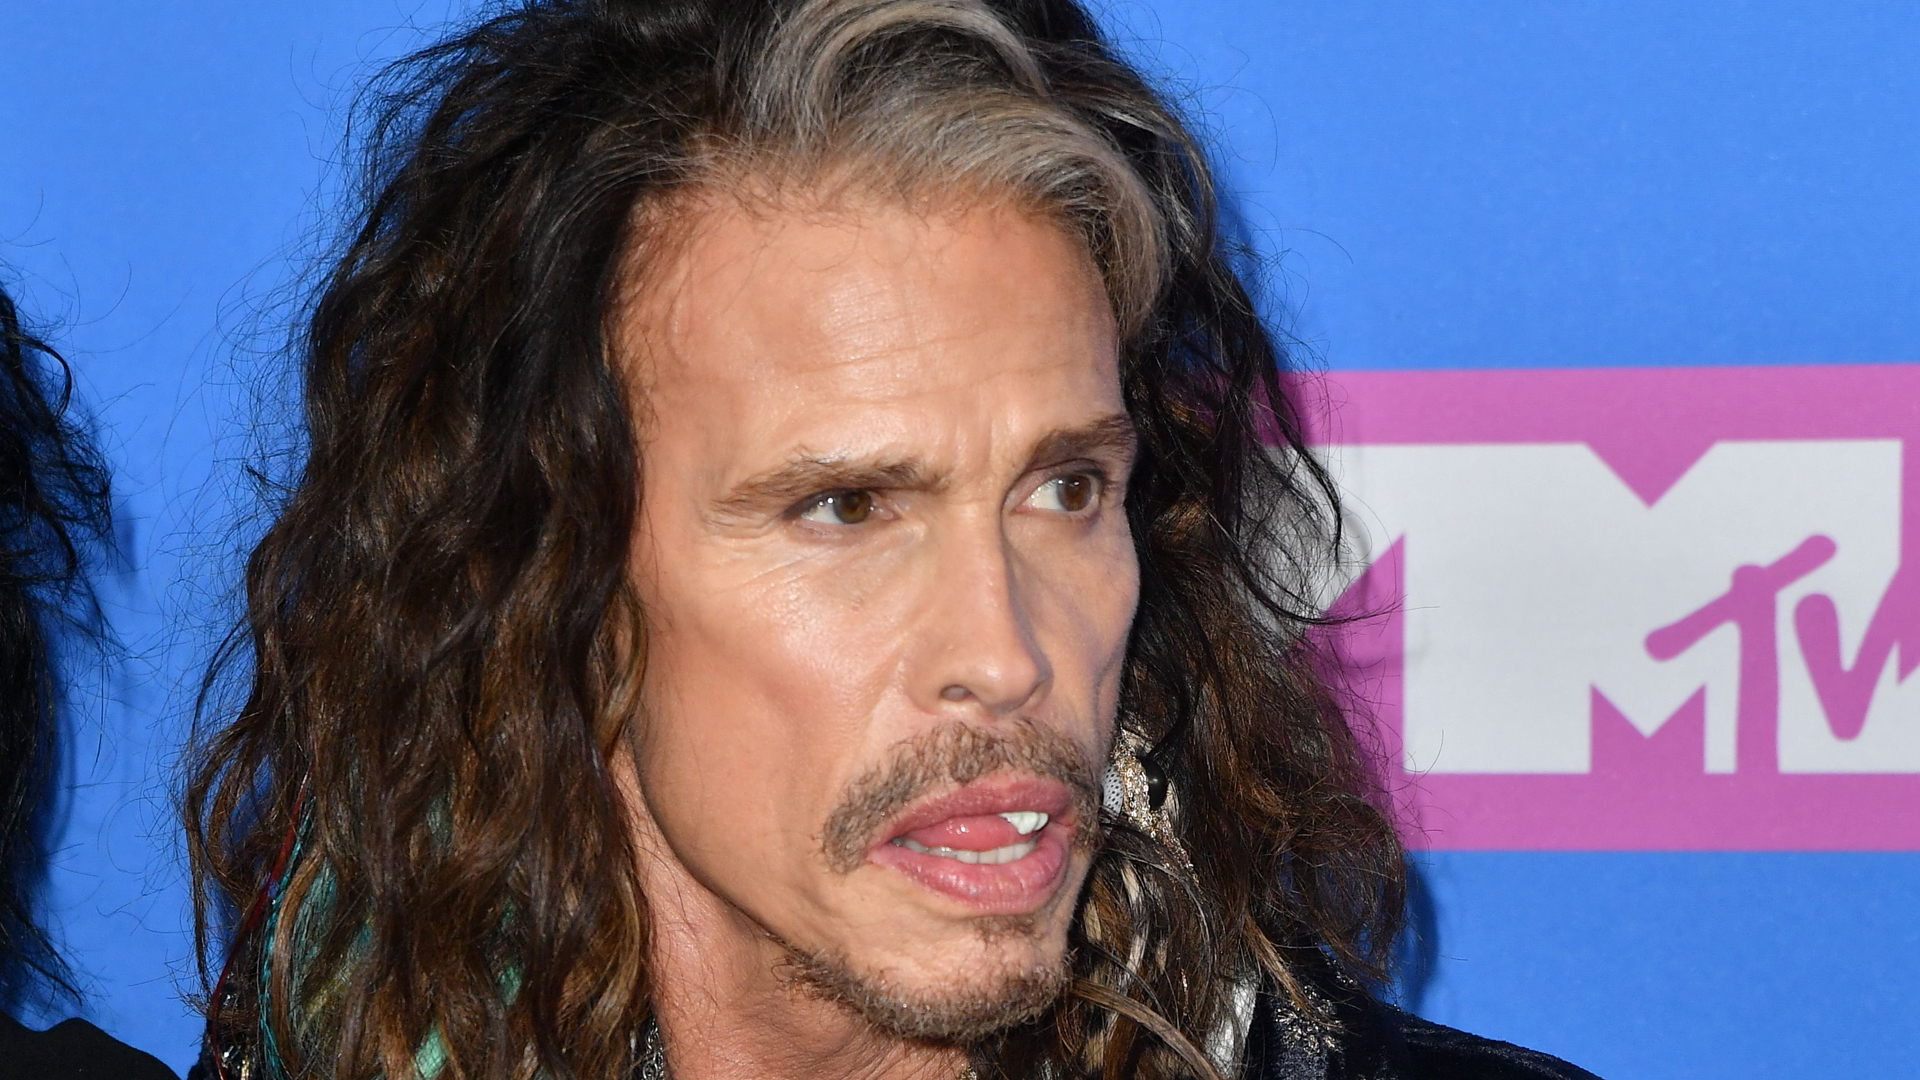 Steven Tyler attends the 2018 MTV Video Music Awards at Radio City Music Hall on Aug. 20, 2018 in New York City. (Credit: ANGELA WEISS/AFP/Getty Images)